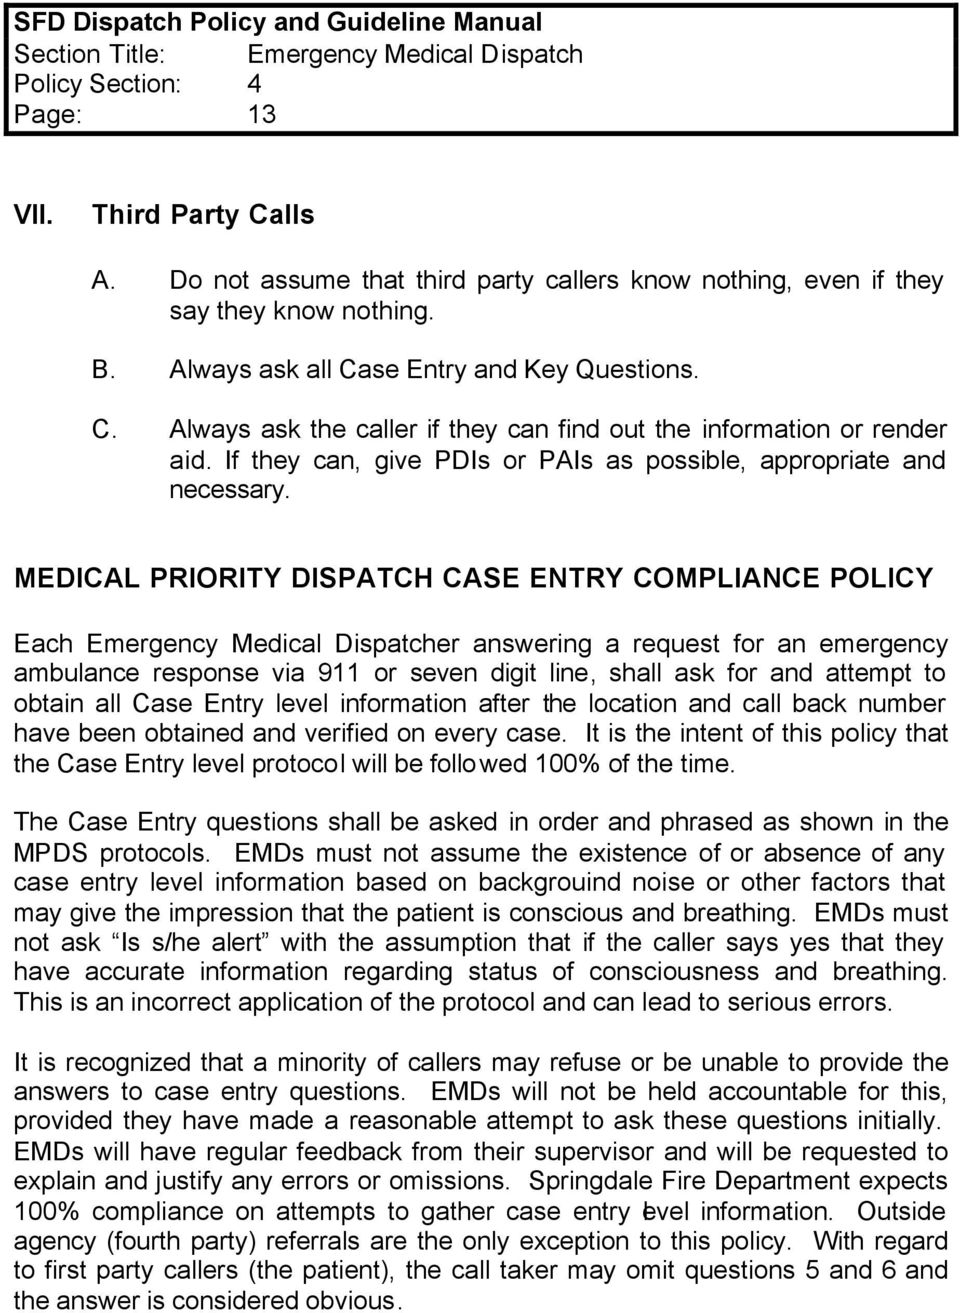 Emergency medical dispatch certification guidelines emergency medical priority dispatch case entry compliance policy each emergency medical dispatcher answering a request for an 1betcityfo Gallery